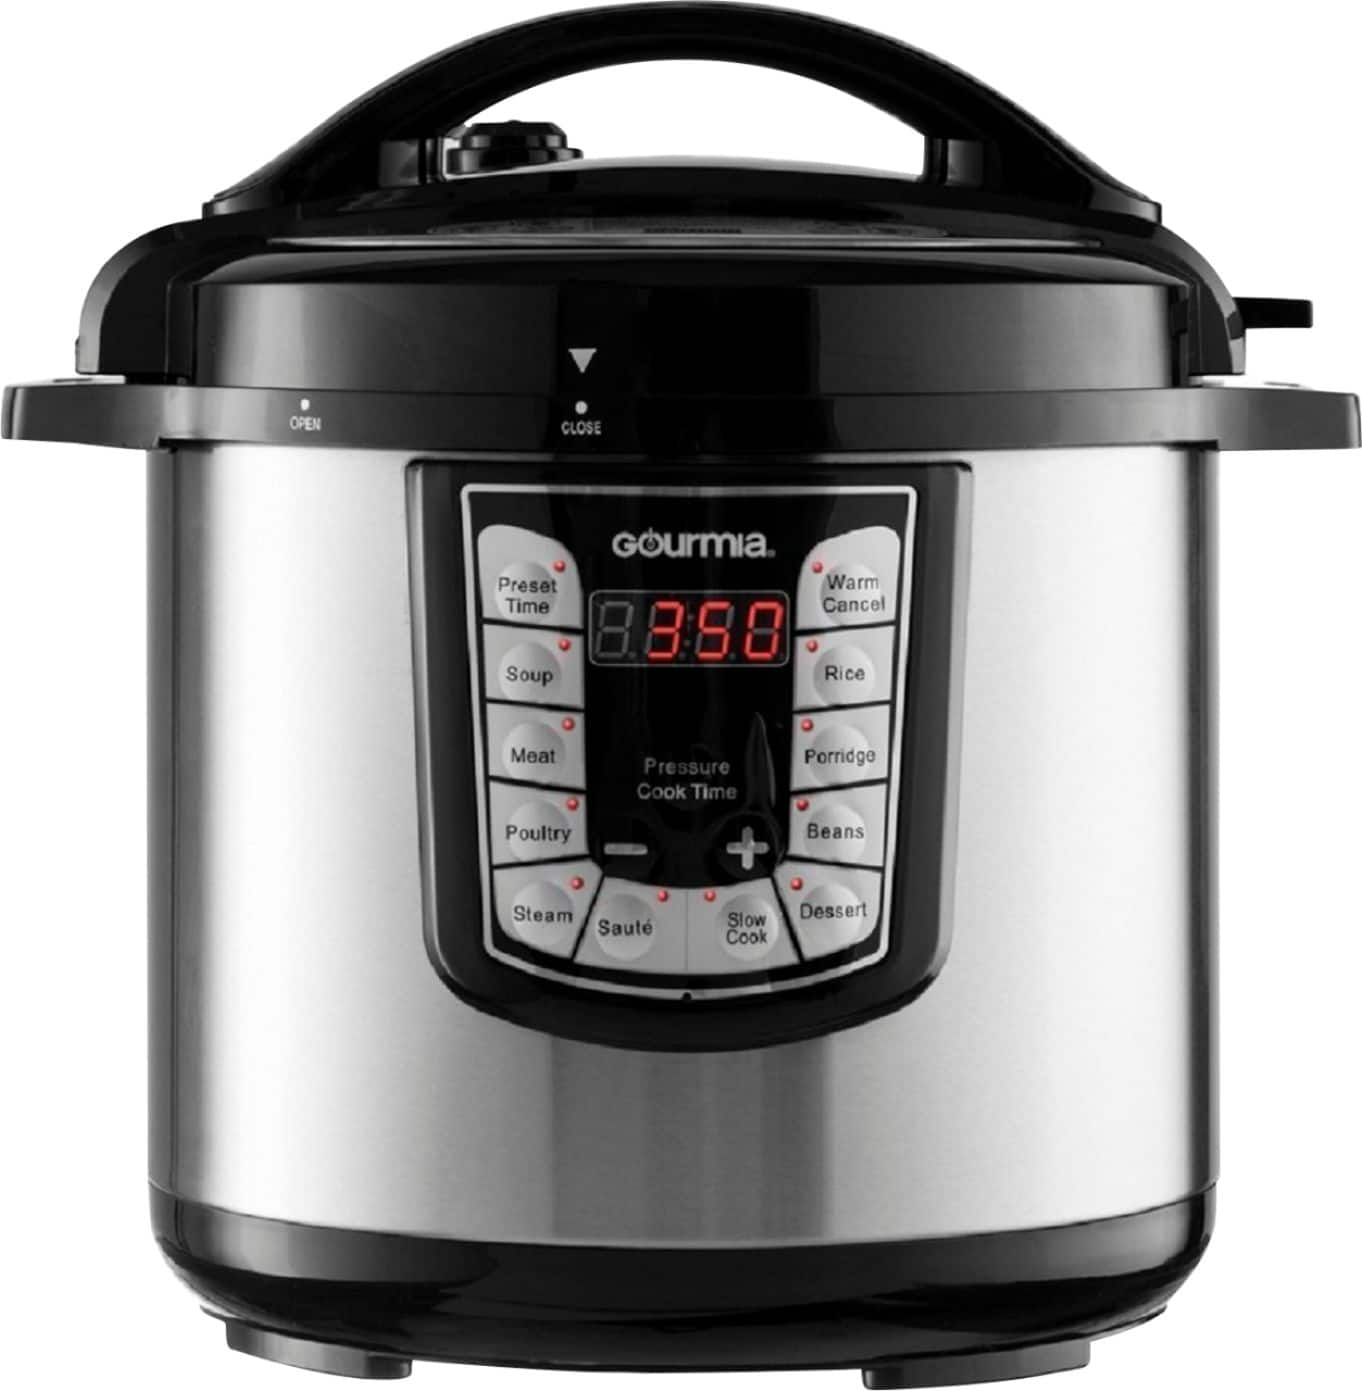 gourmia 8 quart stainless steel pressure cooker. Black Bedroom Furniture Sets. Home Design Ideas